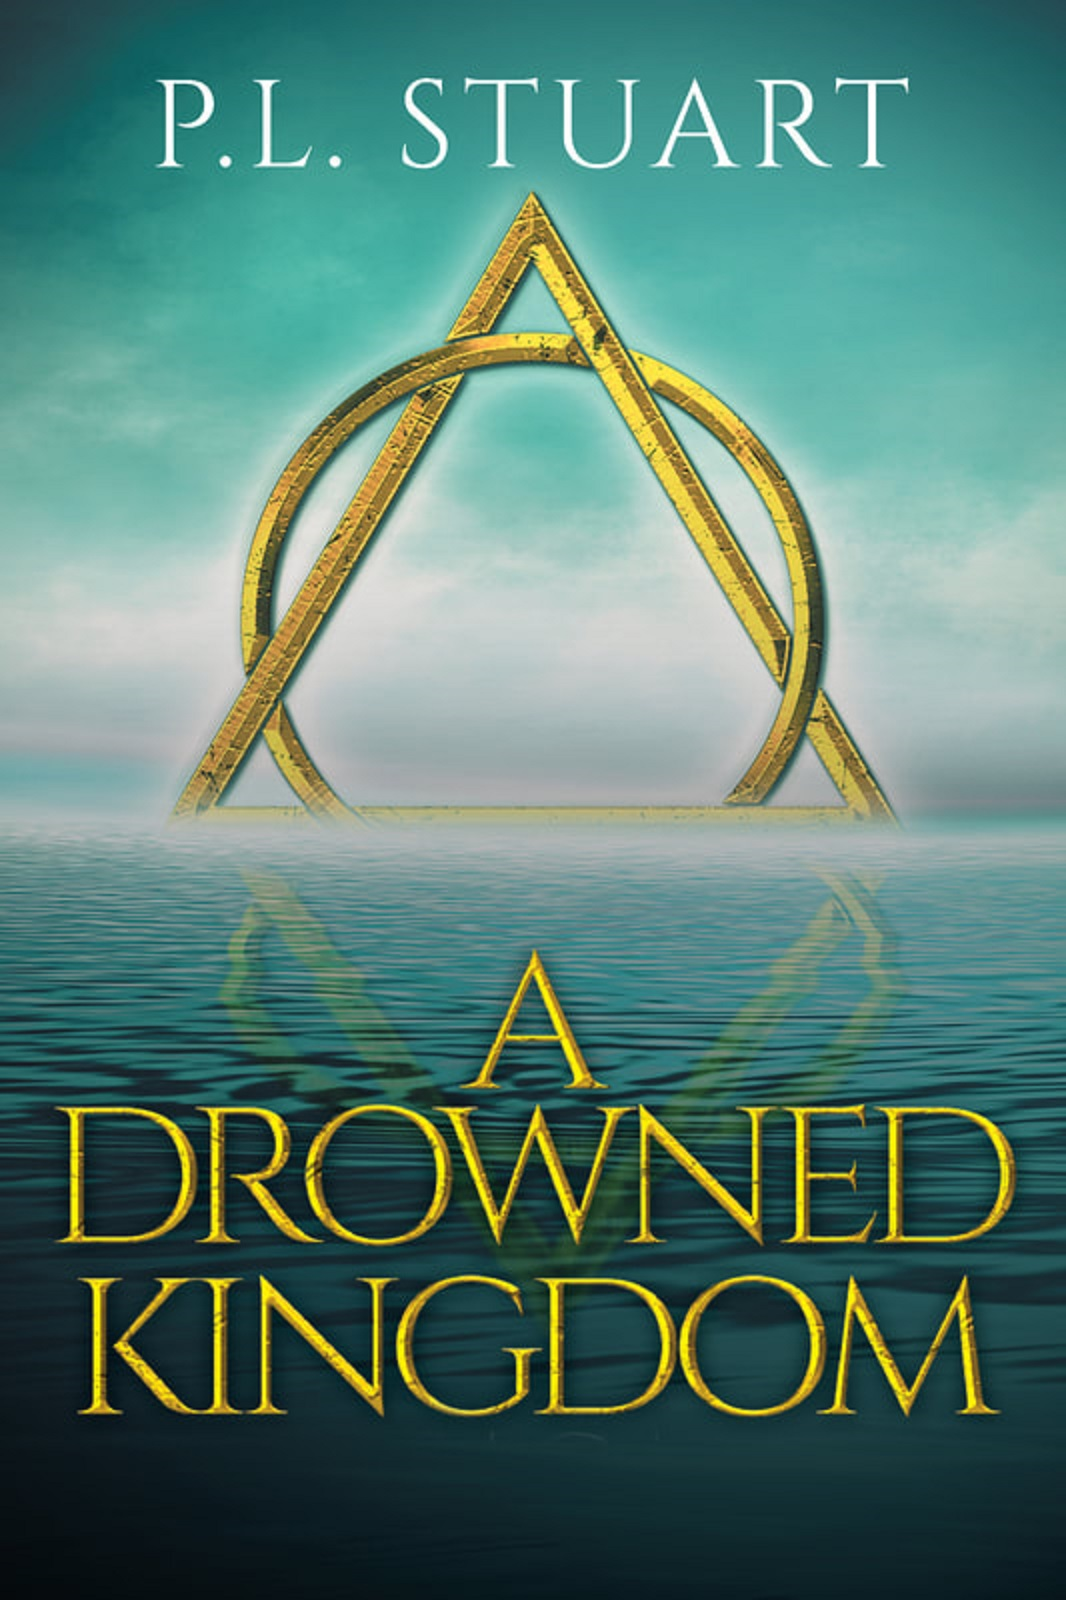 ''When one kingdom drowns, a new one must rise in its place.''